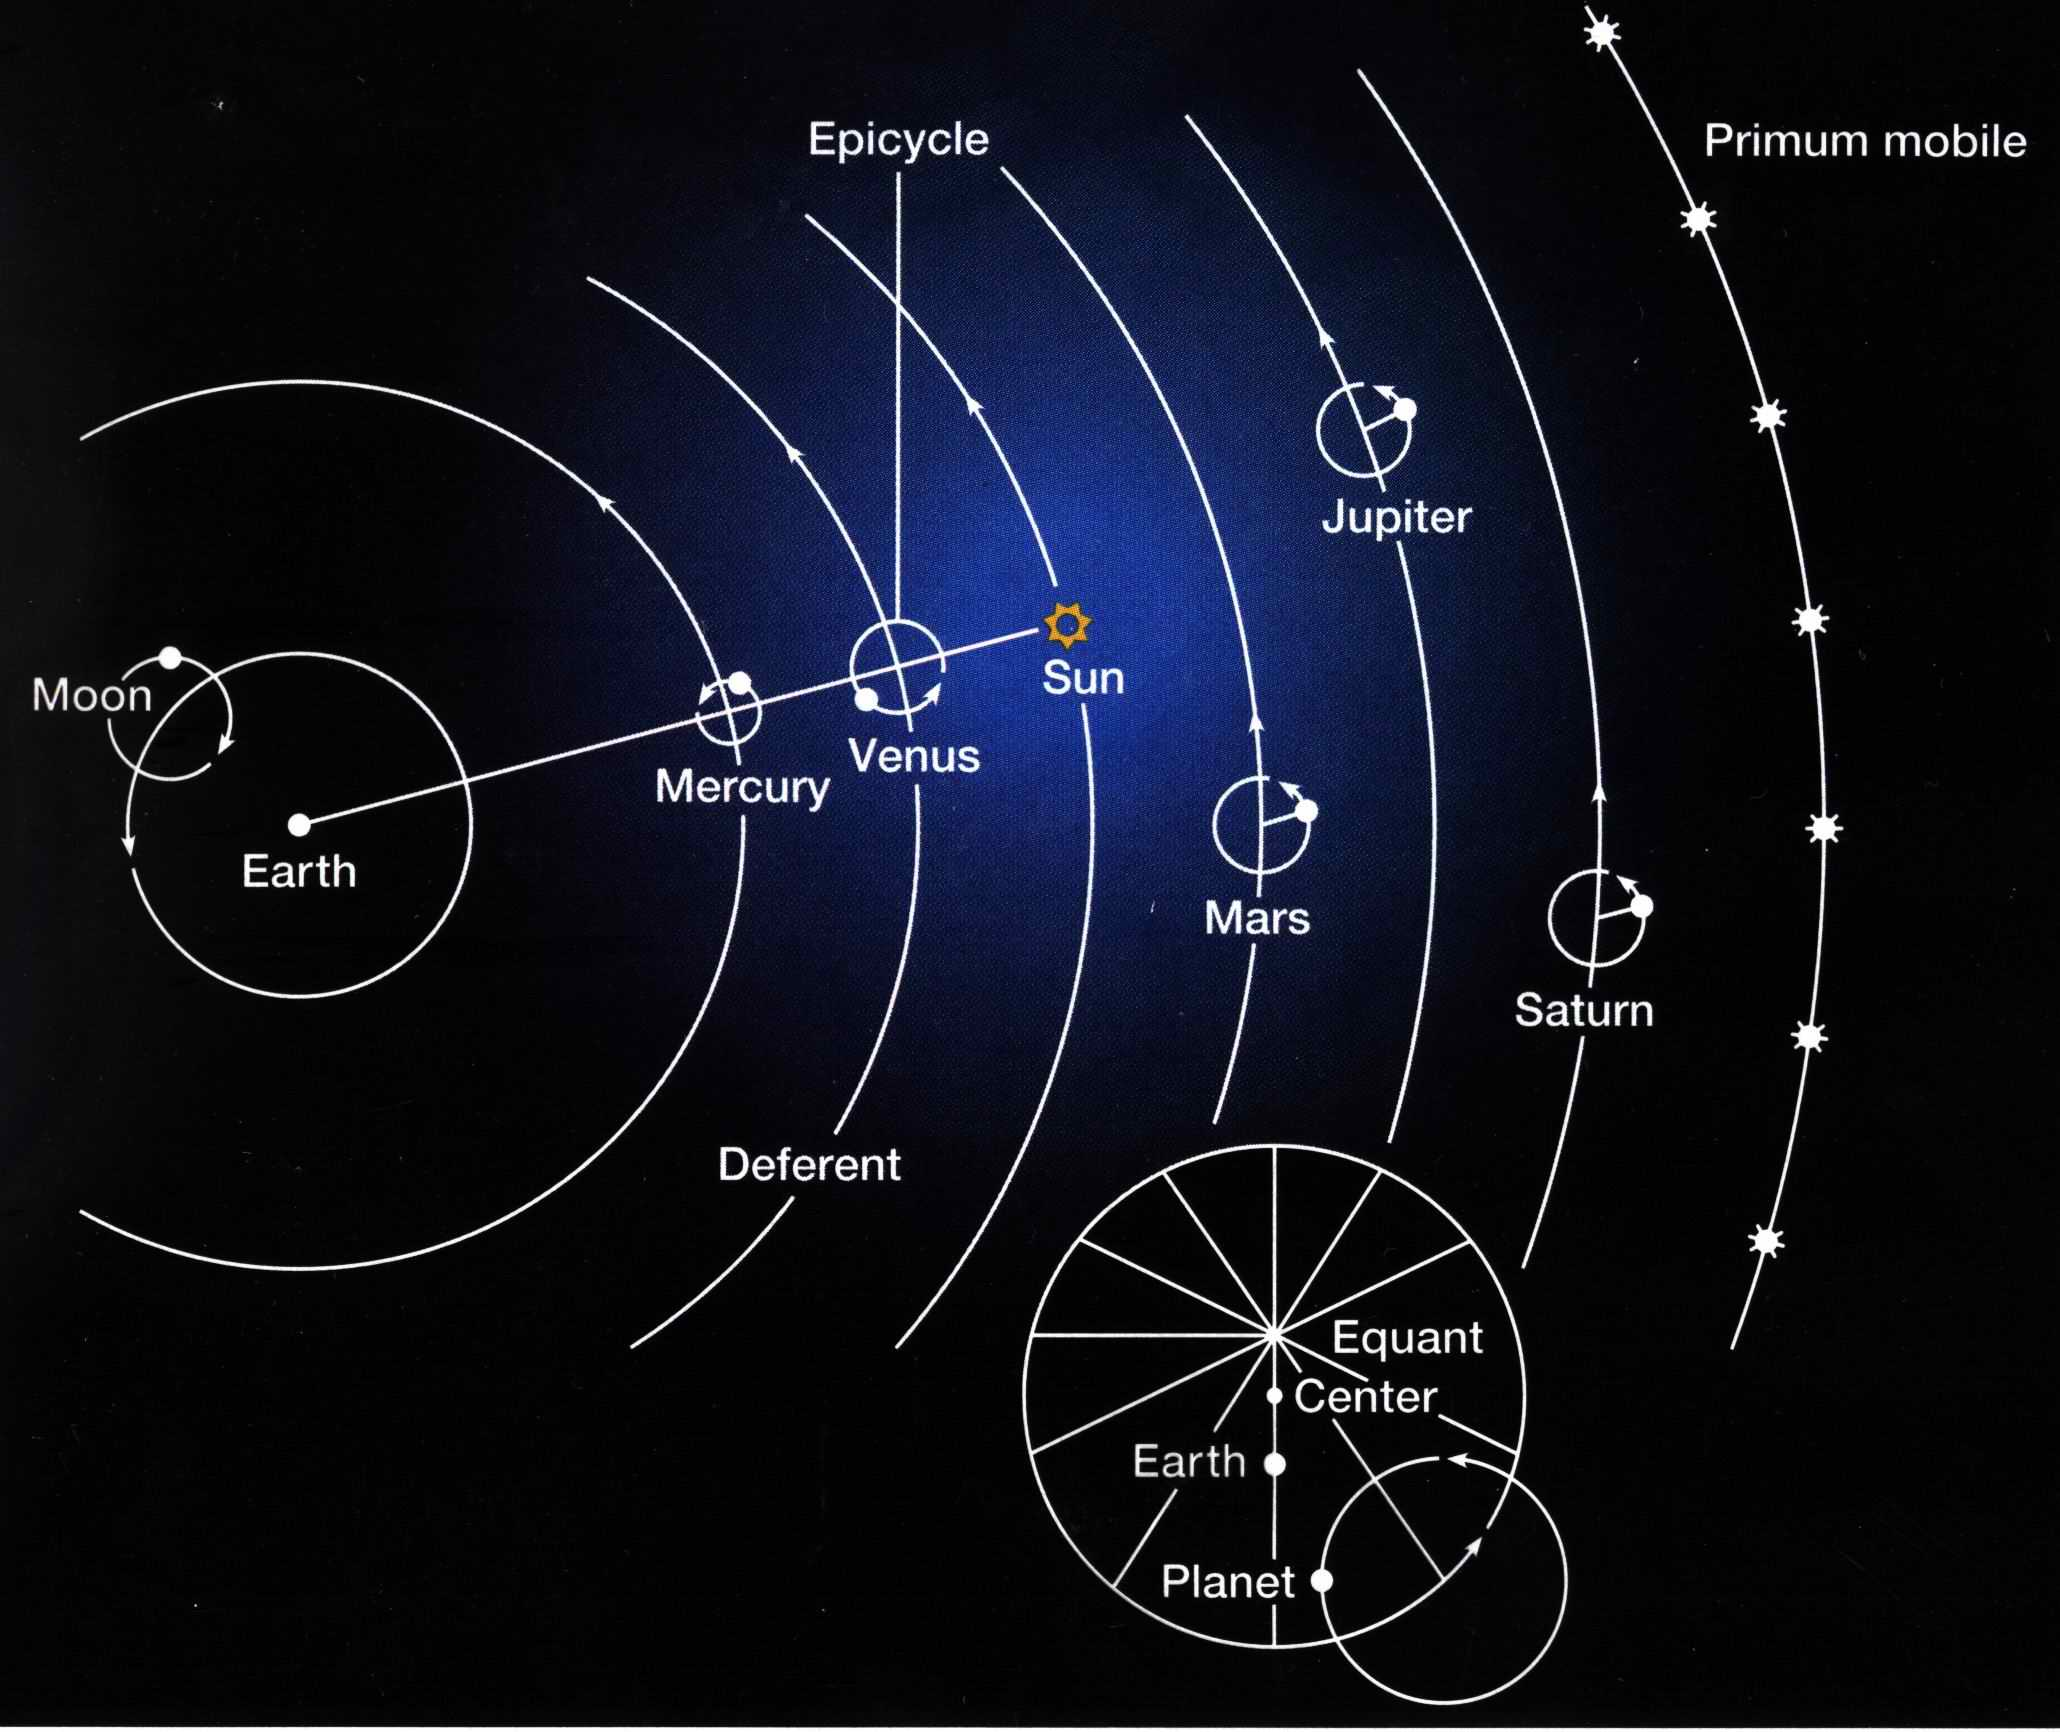 ptolemaic system of astronomy - photo #30